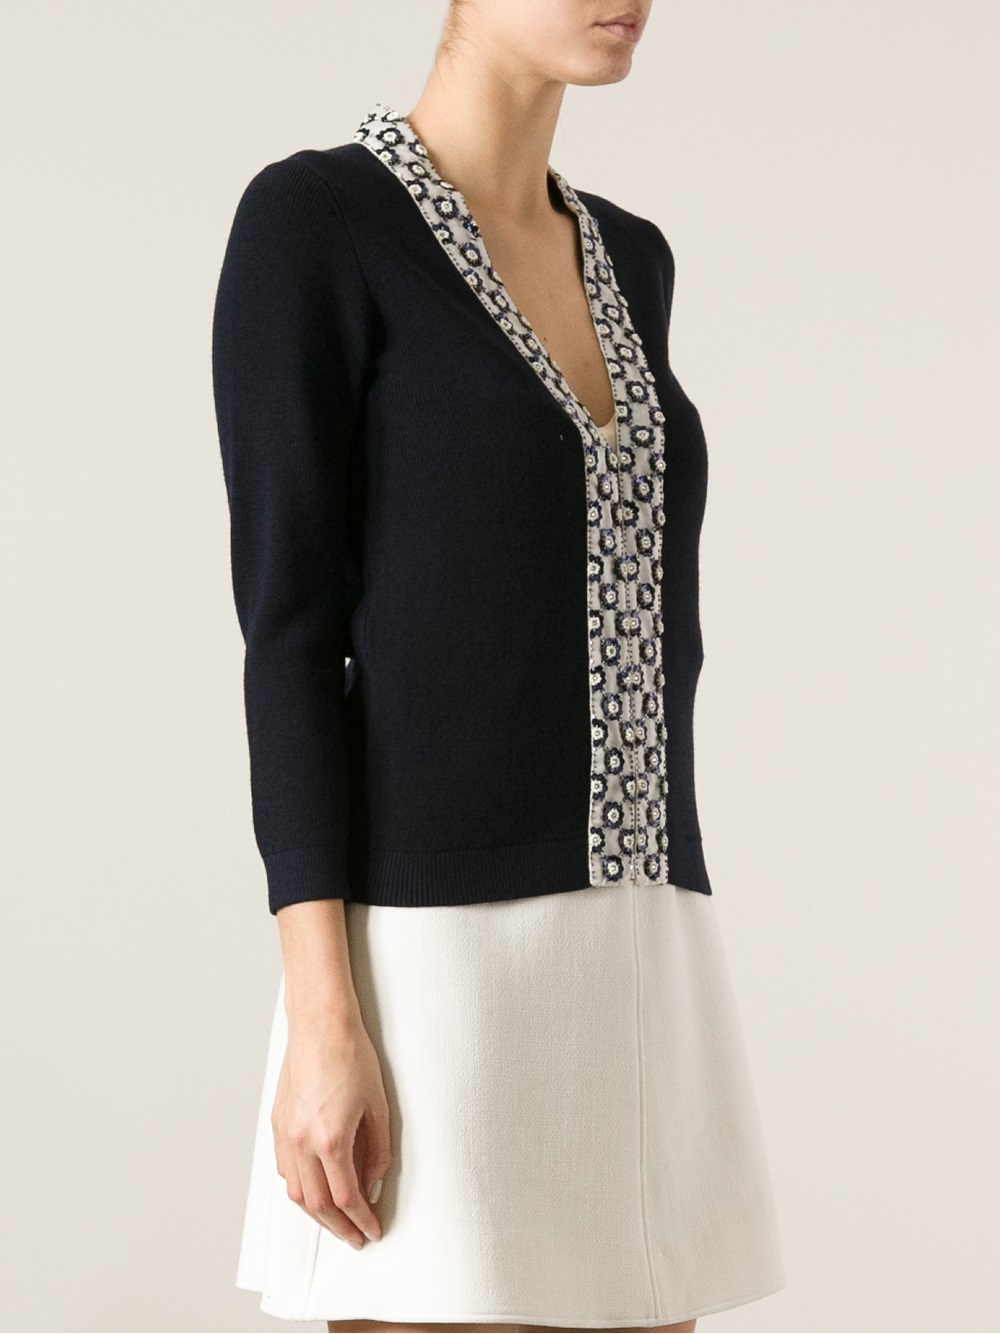 Tory burch Sequin Embellished Cardigan in Blue | Lyst